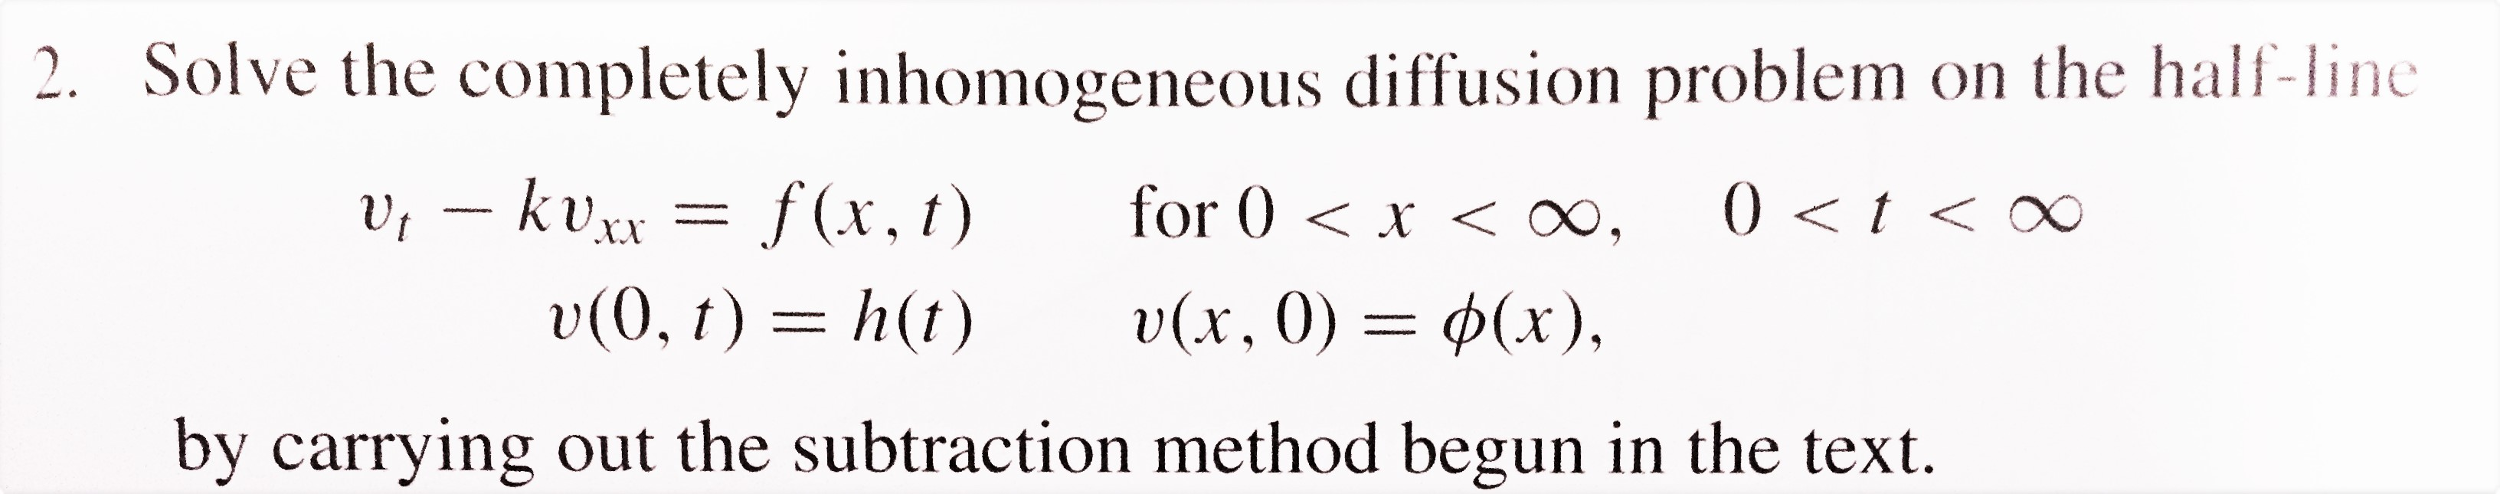 Partial differential equations problem from Walter